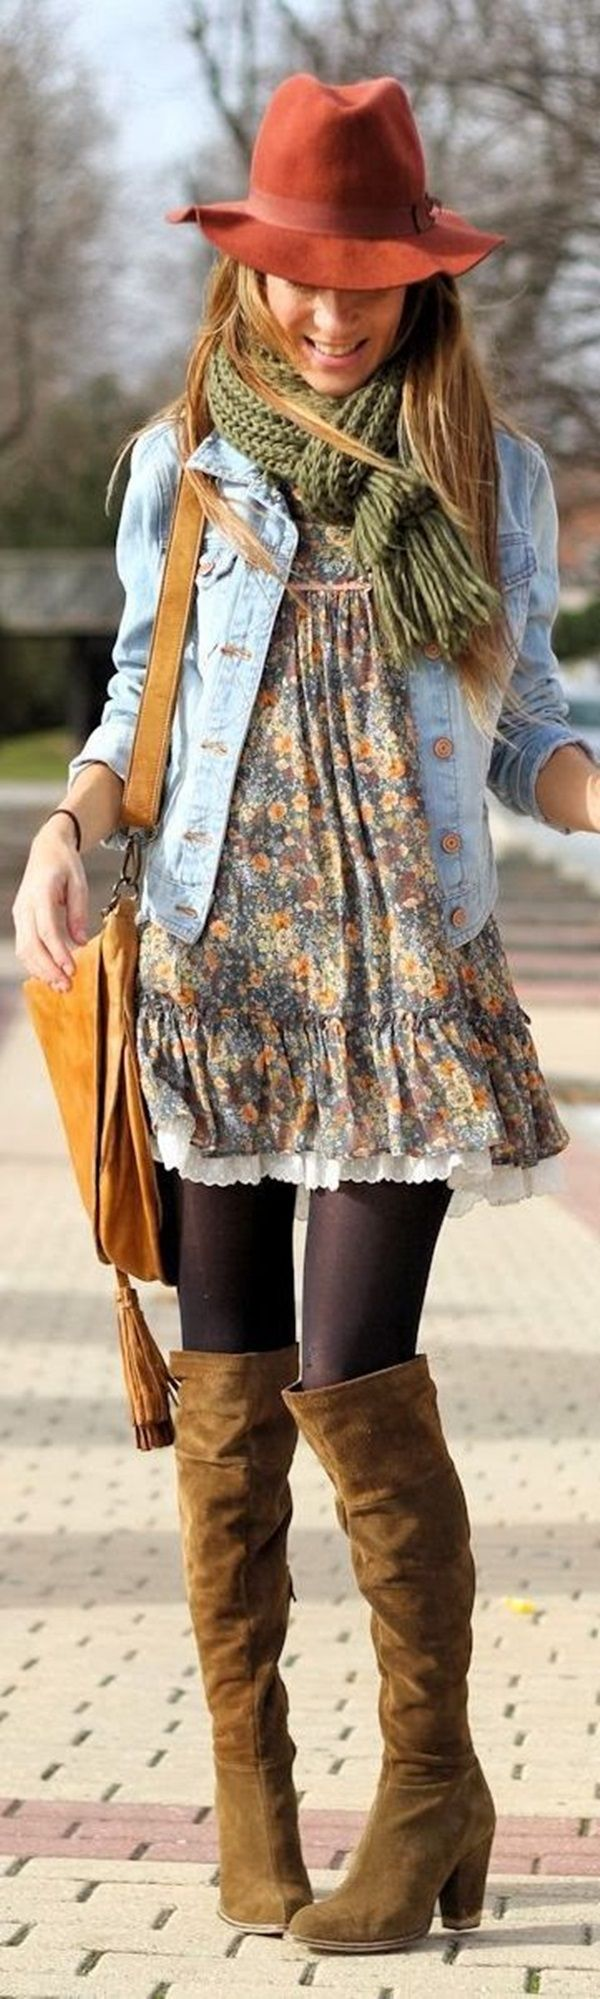 I have a little denim jacket I love to wear in fall. I love this sweet dress, it's just the right balance of hippy/boho without being silly or over the top.